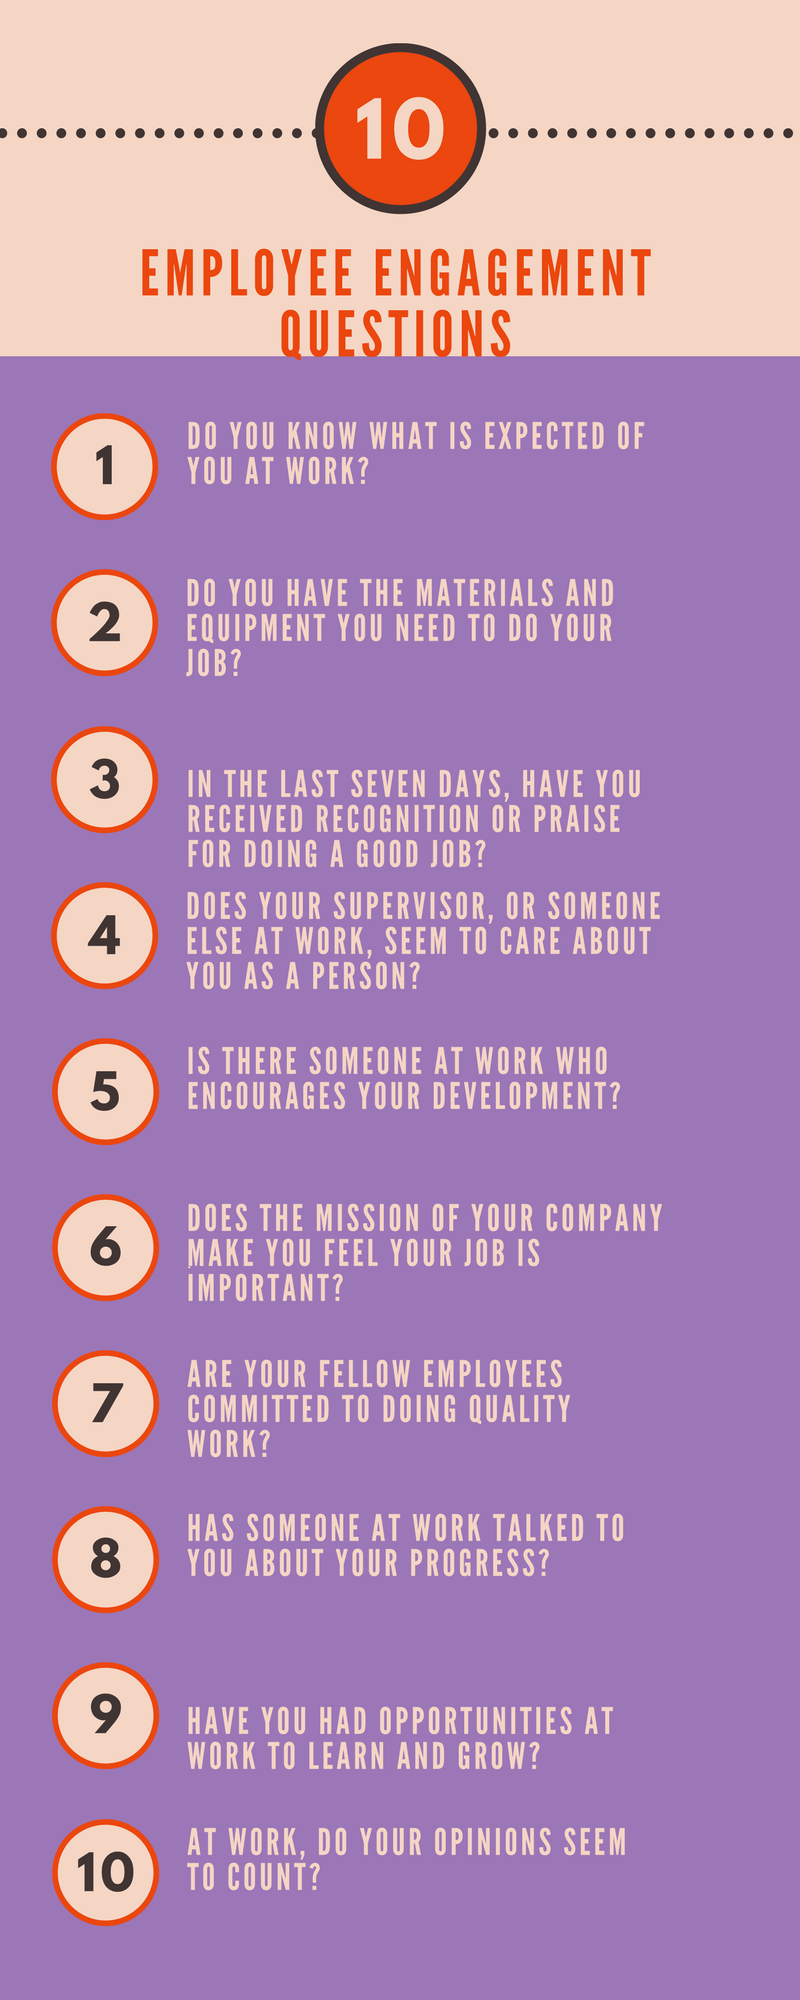 10 Employee Engagement Questions- When was the last time you